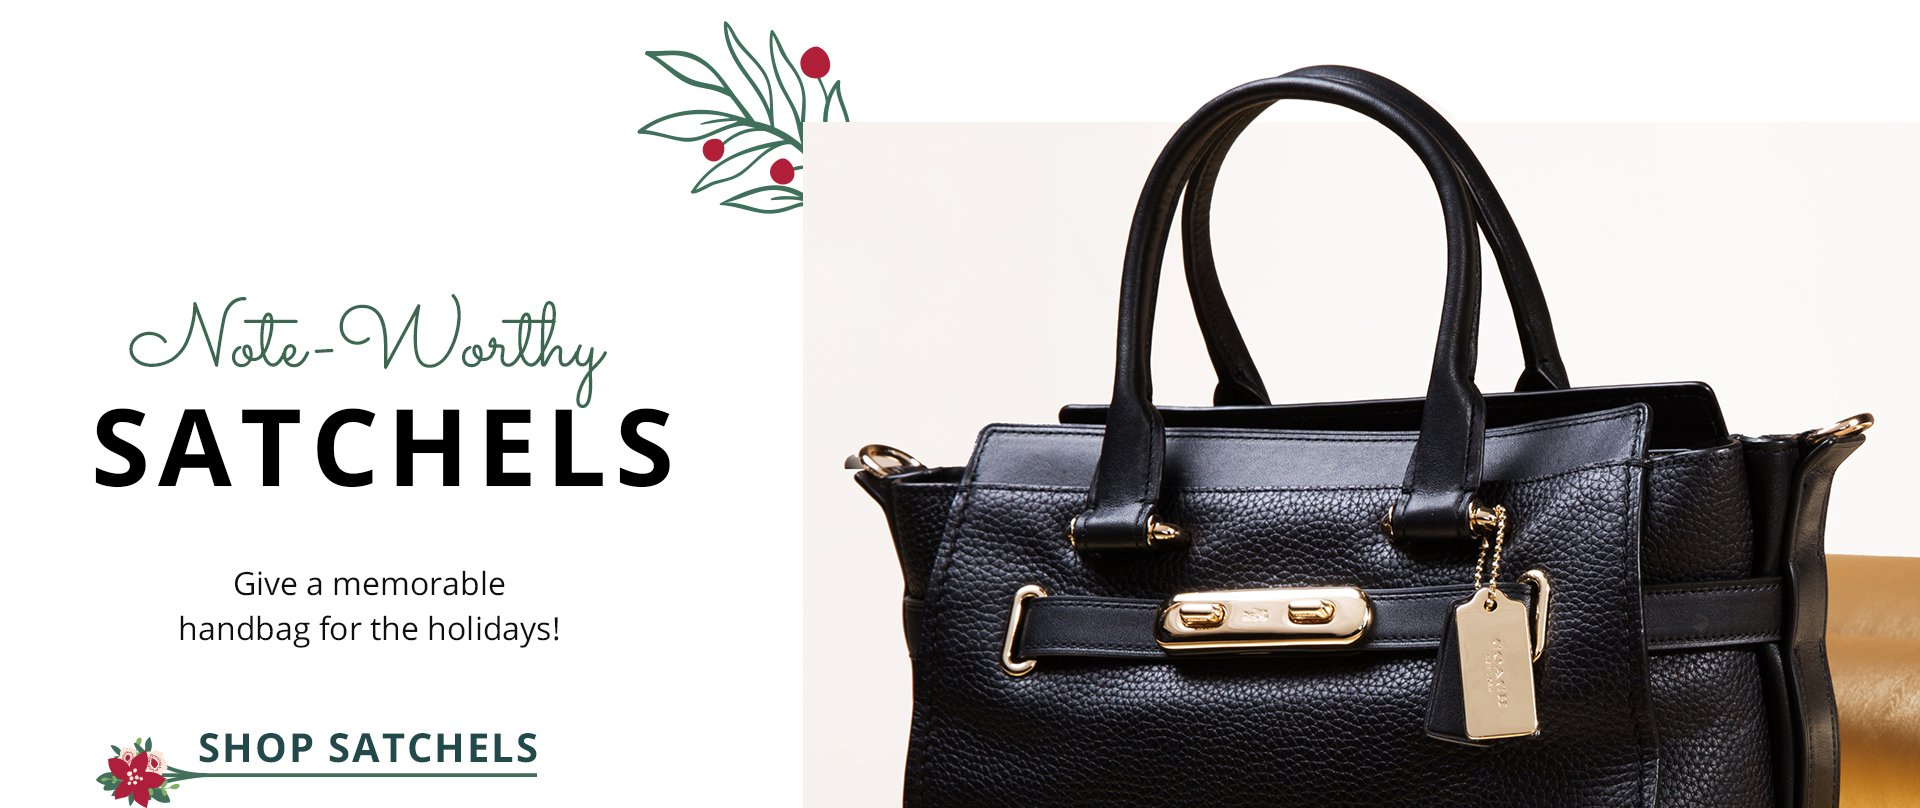 Note-worthy Satchels. Give a memorable handbag for the holidays. Shop Satchels.